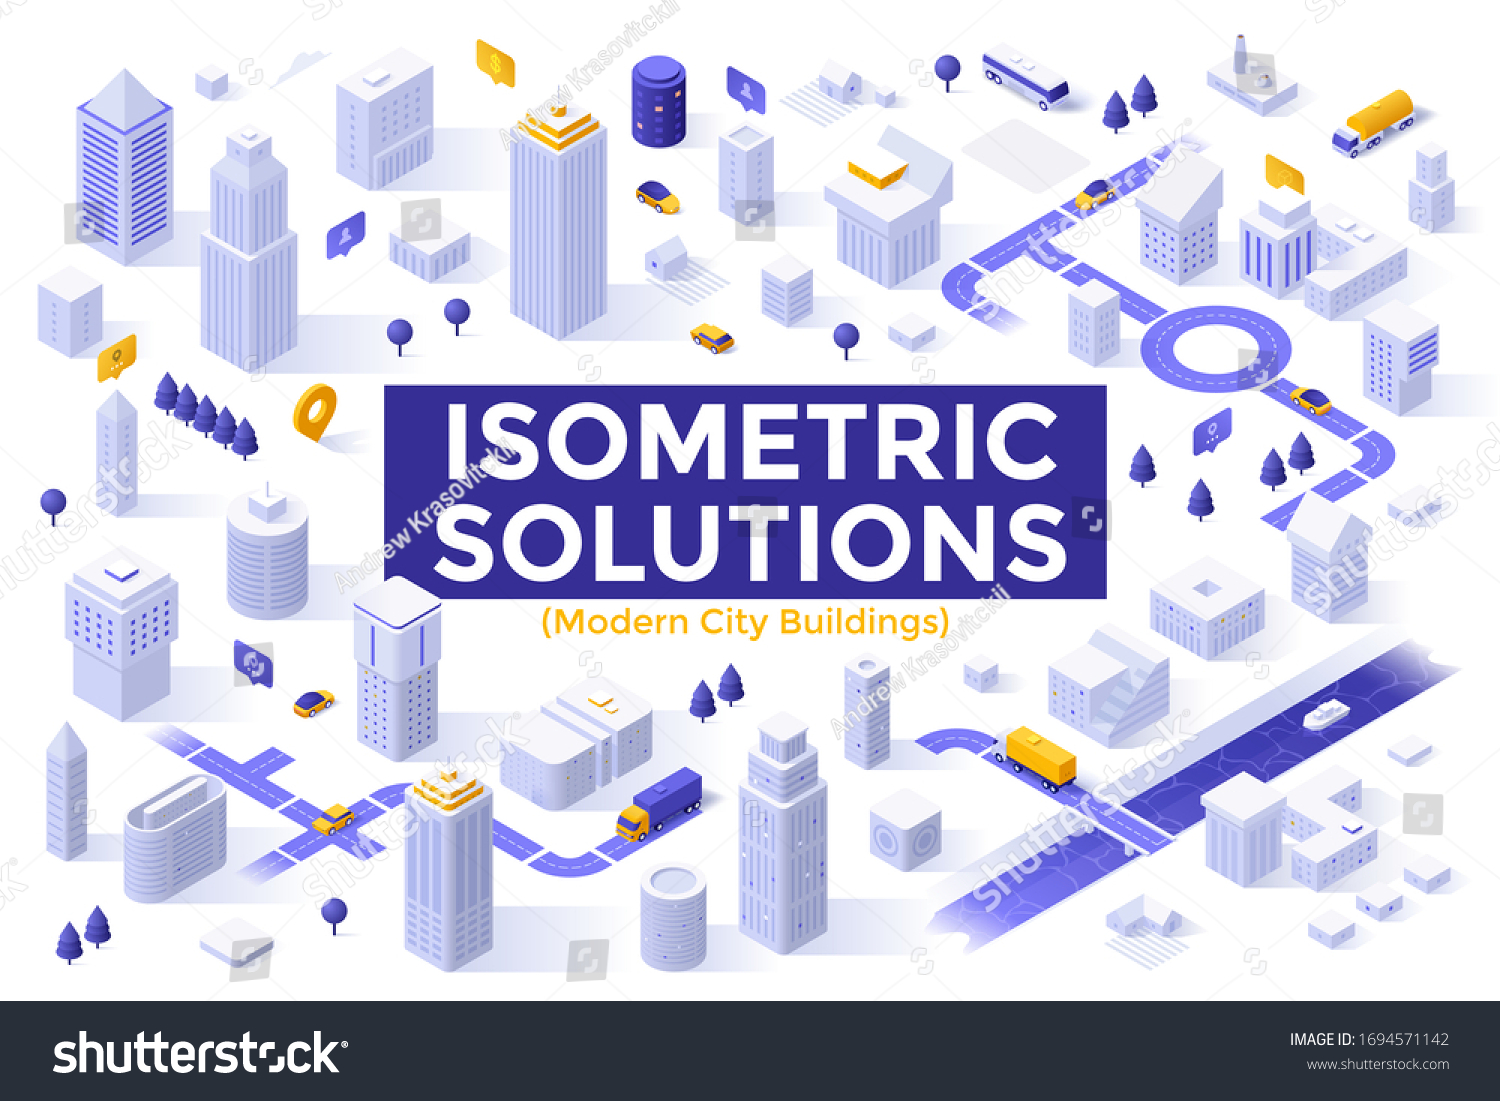 Bundle of megapolis city buildings, downtown skyscrapers, suburban houses. Set of isometric design elements or objects isolated on white background. Modern vector illustration for map construction.